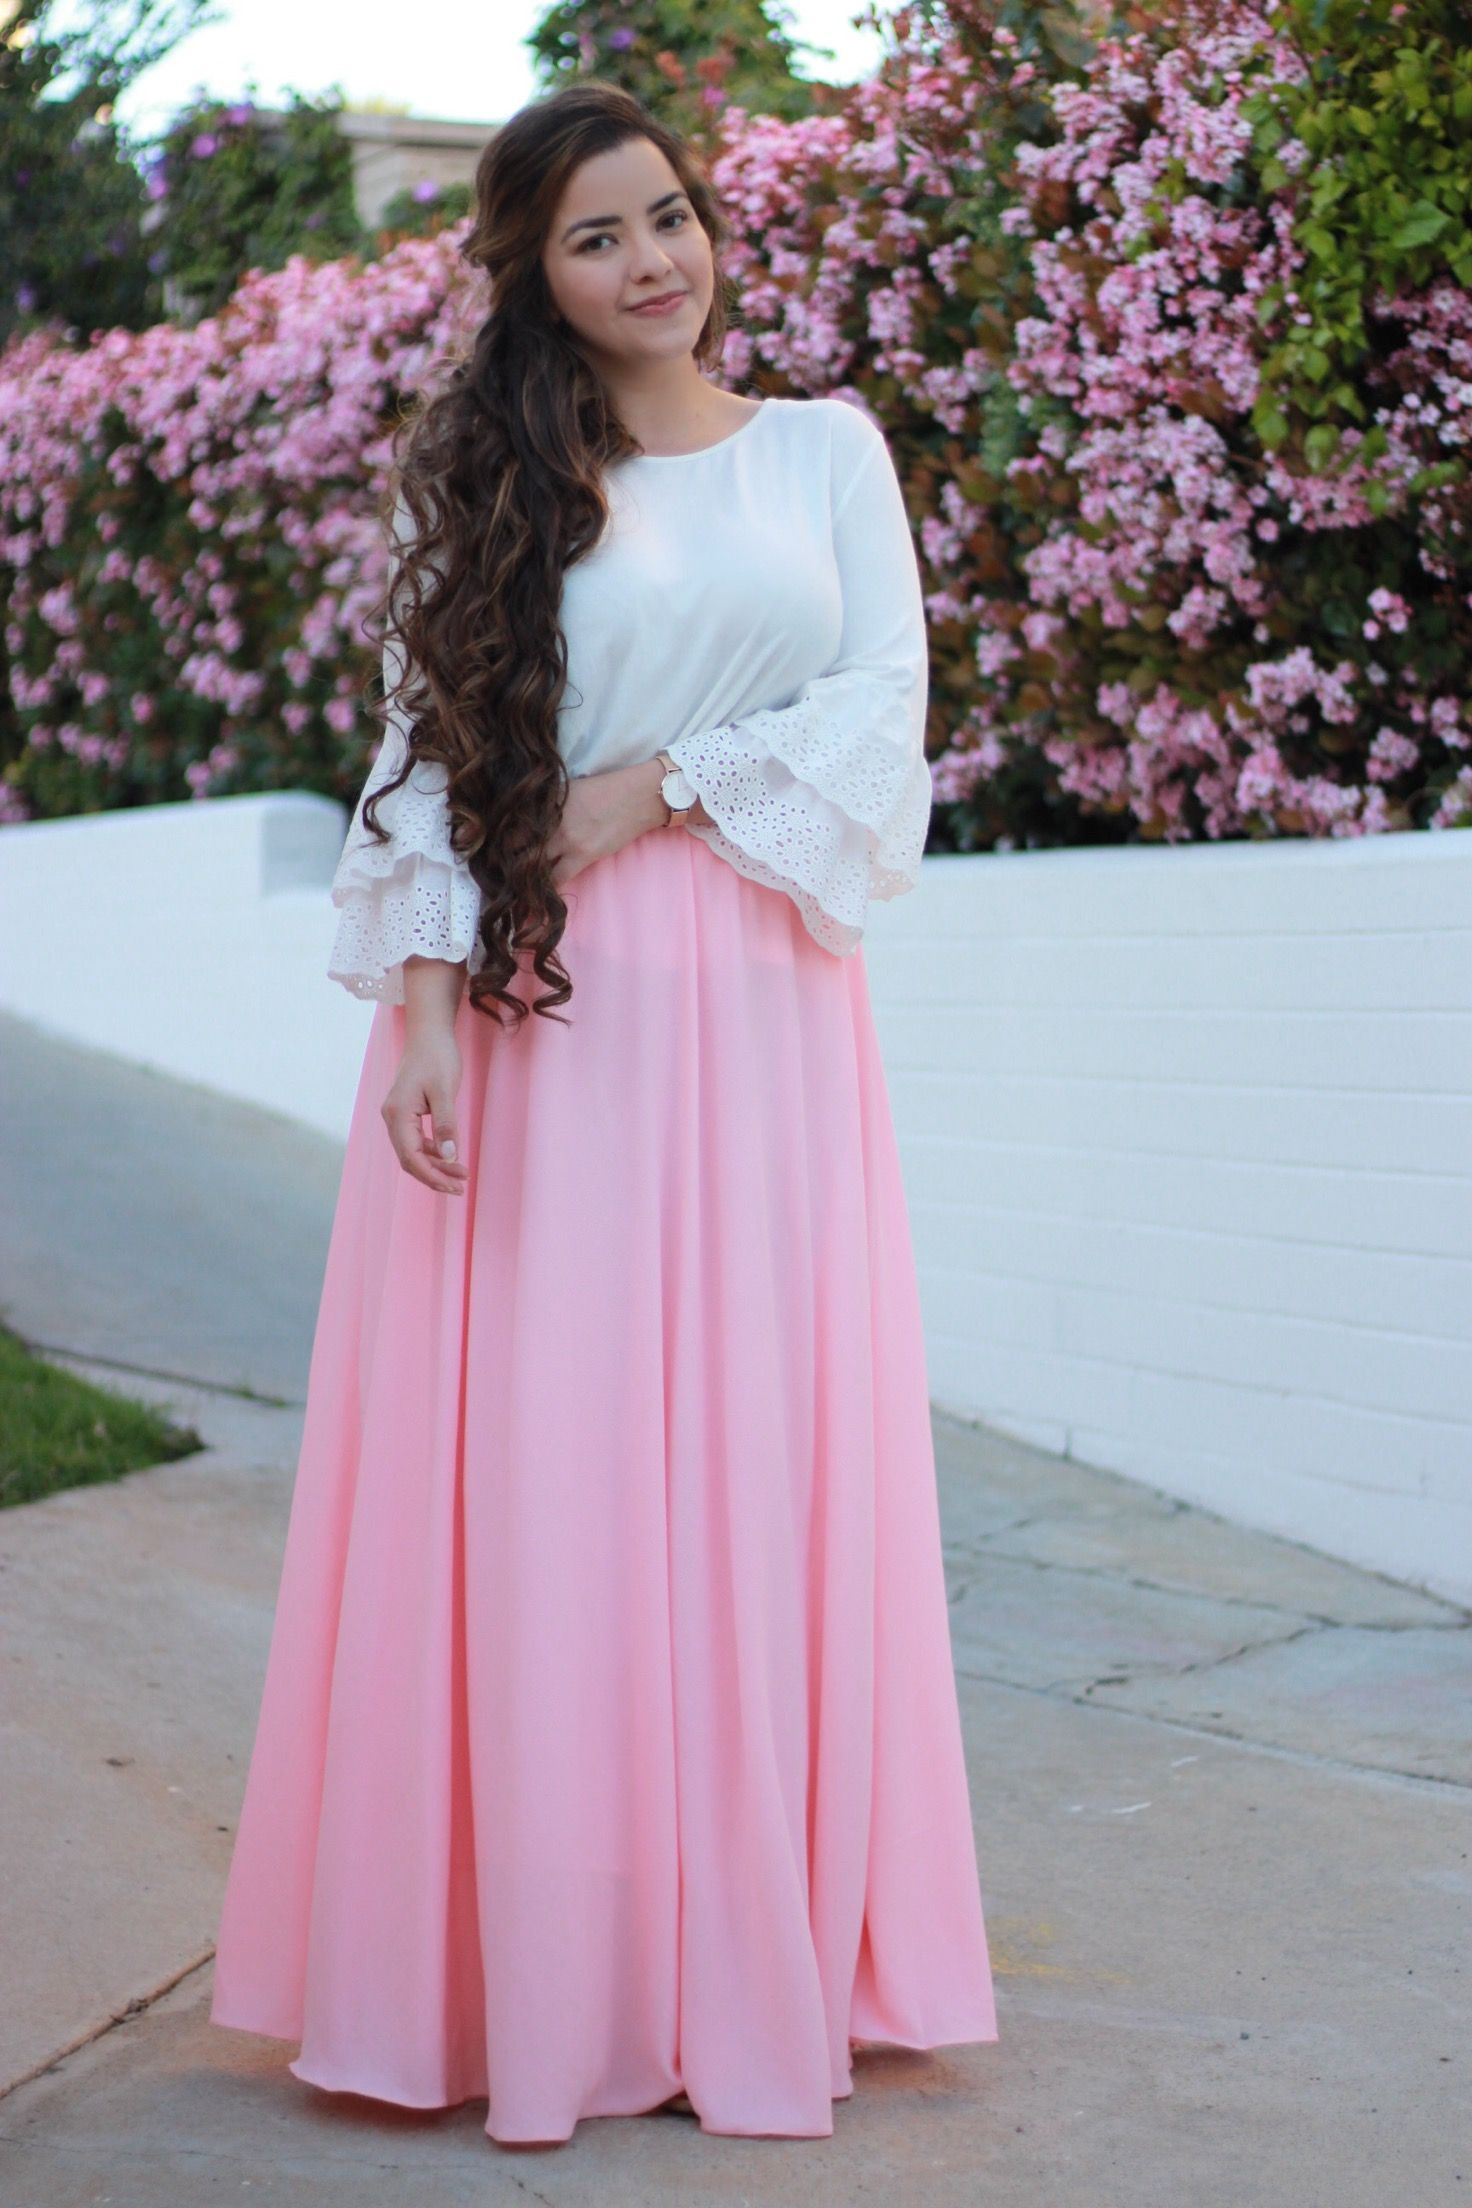 Are you a fan of maxi skirts? Our Nora skirts are amazing! Available ...